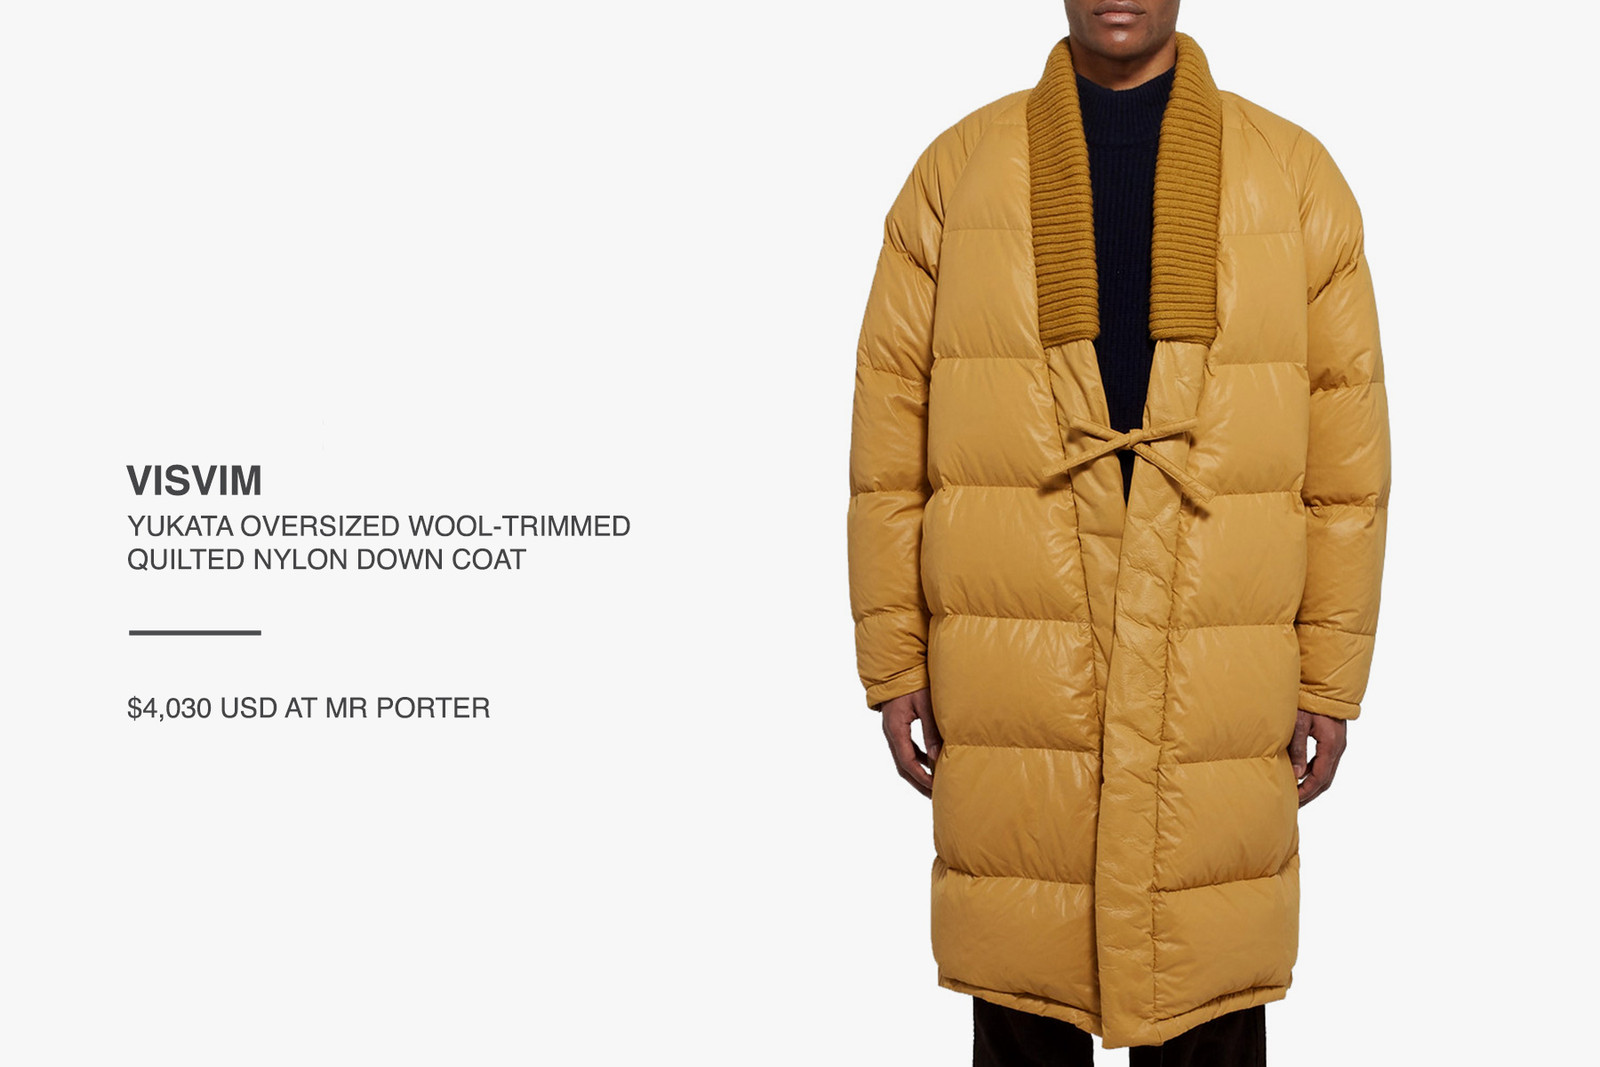 Best Puffer Jackets down coats Men's Fall/Winter 2018 VISVIM THE NORTH FACE GUCCI VERSACE STONE ISLAND RICK OWENS BURBERRY OUR LEGACY C.P. COMPANY BALENCIAGA CALVIN KLEIN PATAGONIA SACAI WOOLRICH TAKAHIROMIYASHITA THESOLOIST. AIMÉ LEON DORE A-COLD-WALL ALYX GMBH Y/PROJECT CALVIN KLEIN JEANS EST. 1978 OAKLEY BY SAMUEL ROSS